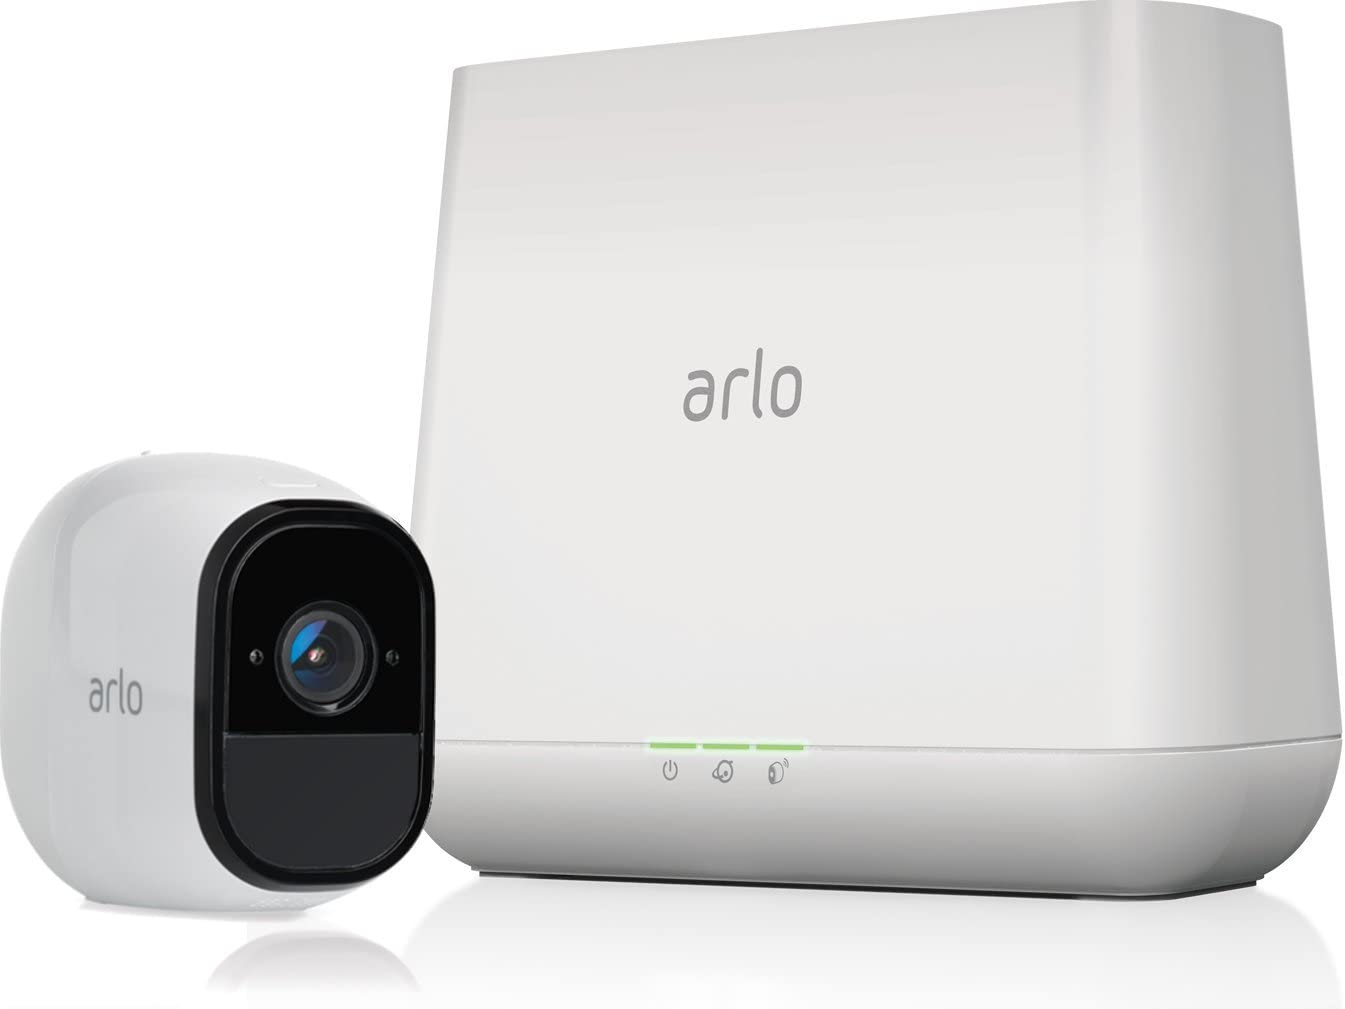 Arlo Pro – Wireless Home Security Camera System with Siren Rechargeable, Night vision, Indoor Outdoor, HD Video, 2-Way Audio, Wall Mount Cloud Storage Included 1 camera kit VMS4130